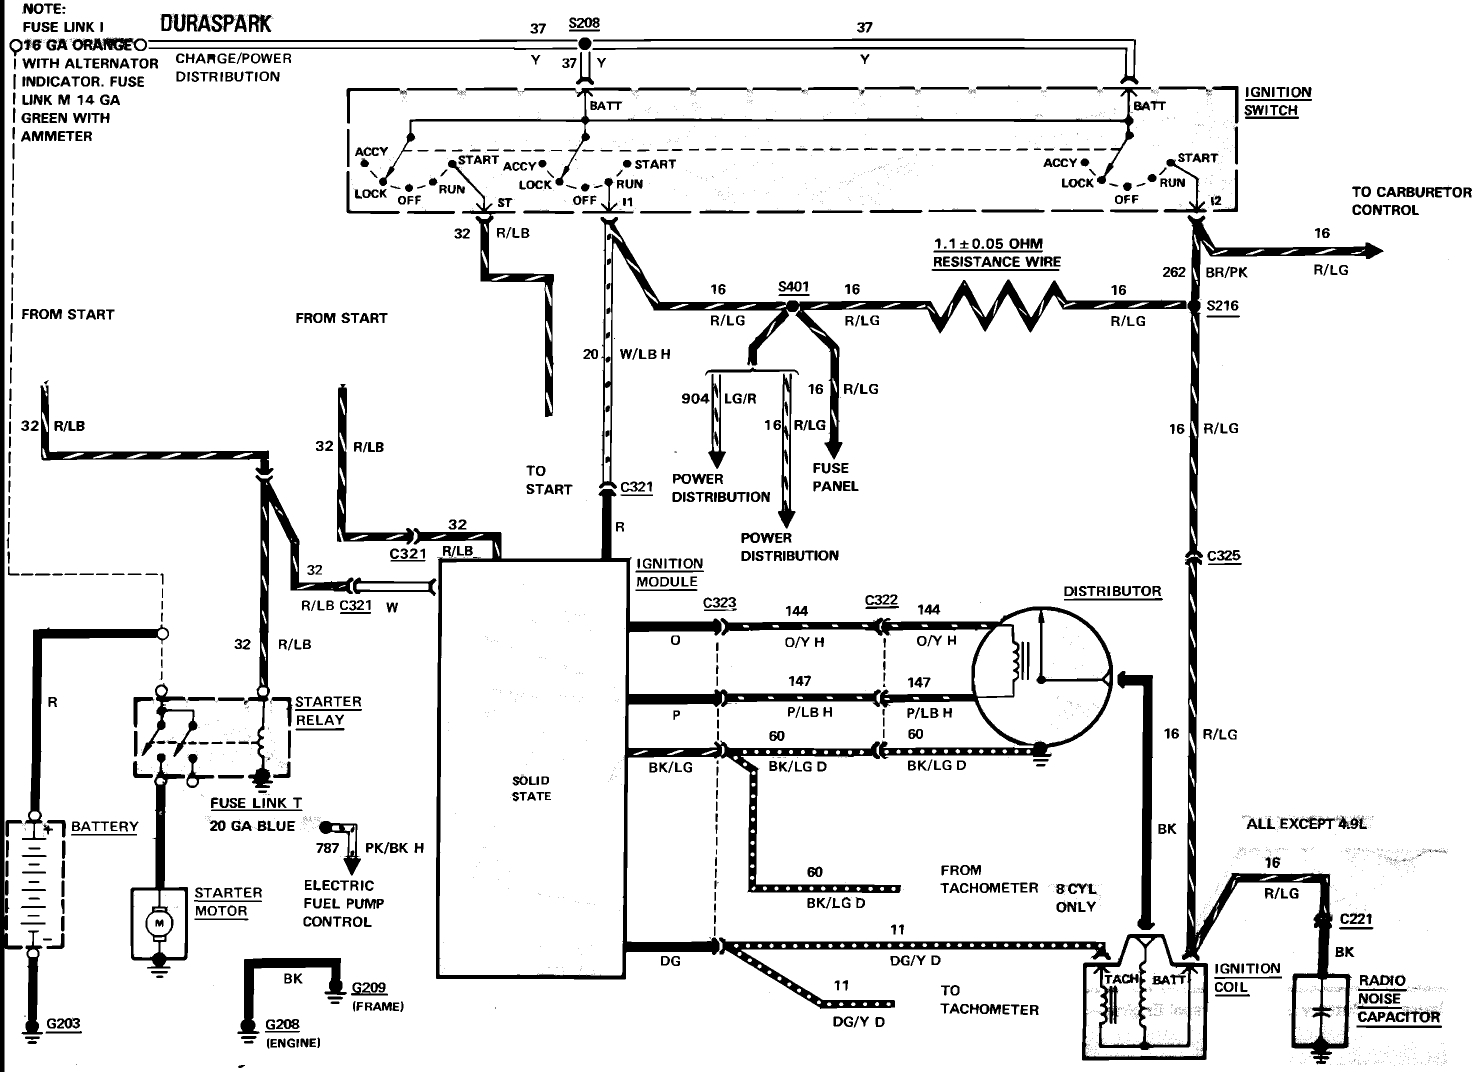 1989 ford f150 ignition wiring diagram | free wiring diagram 93 ford e 150 ignition wiring diagram #1